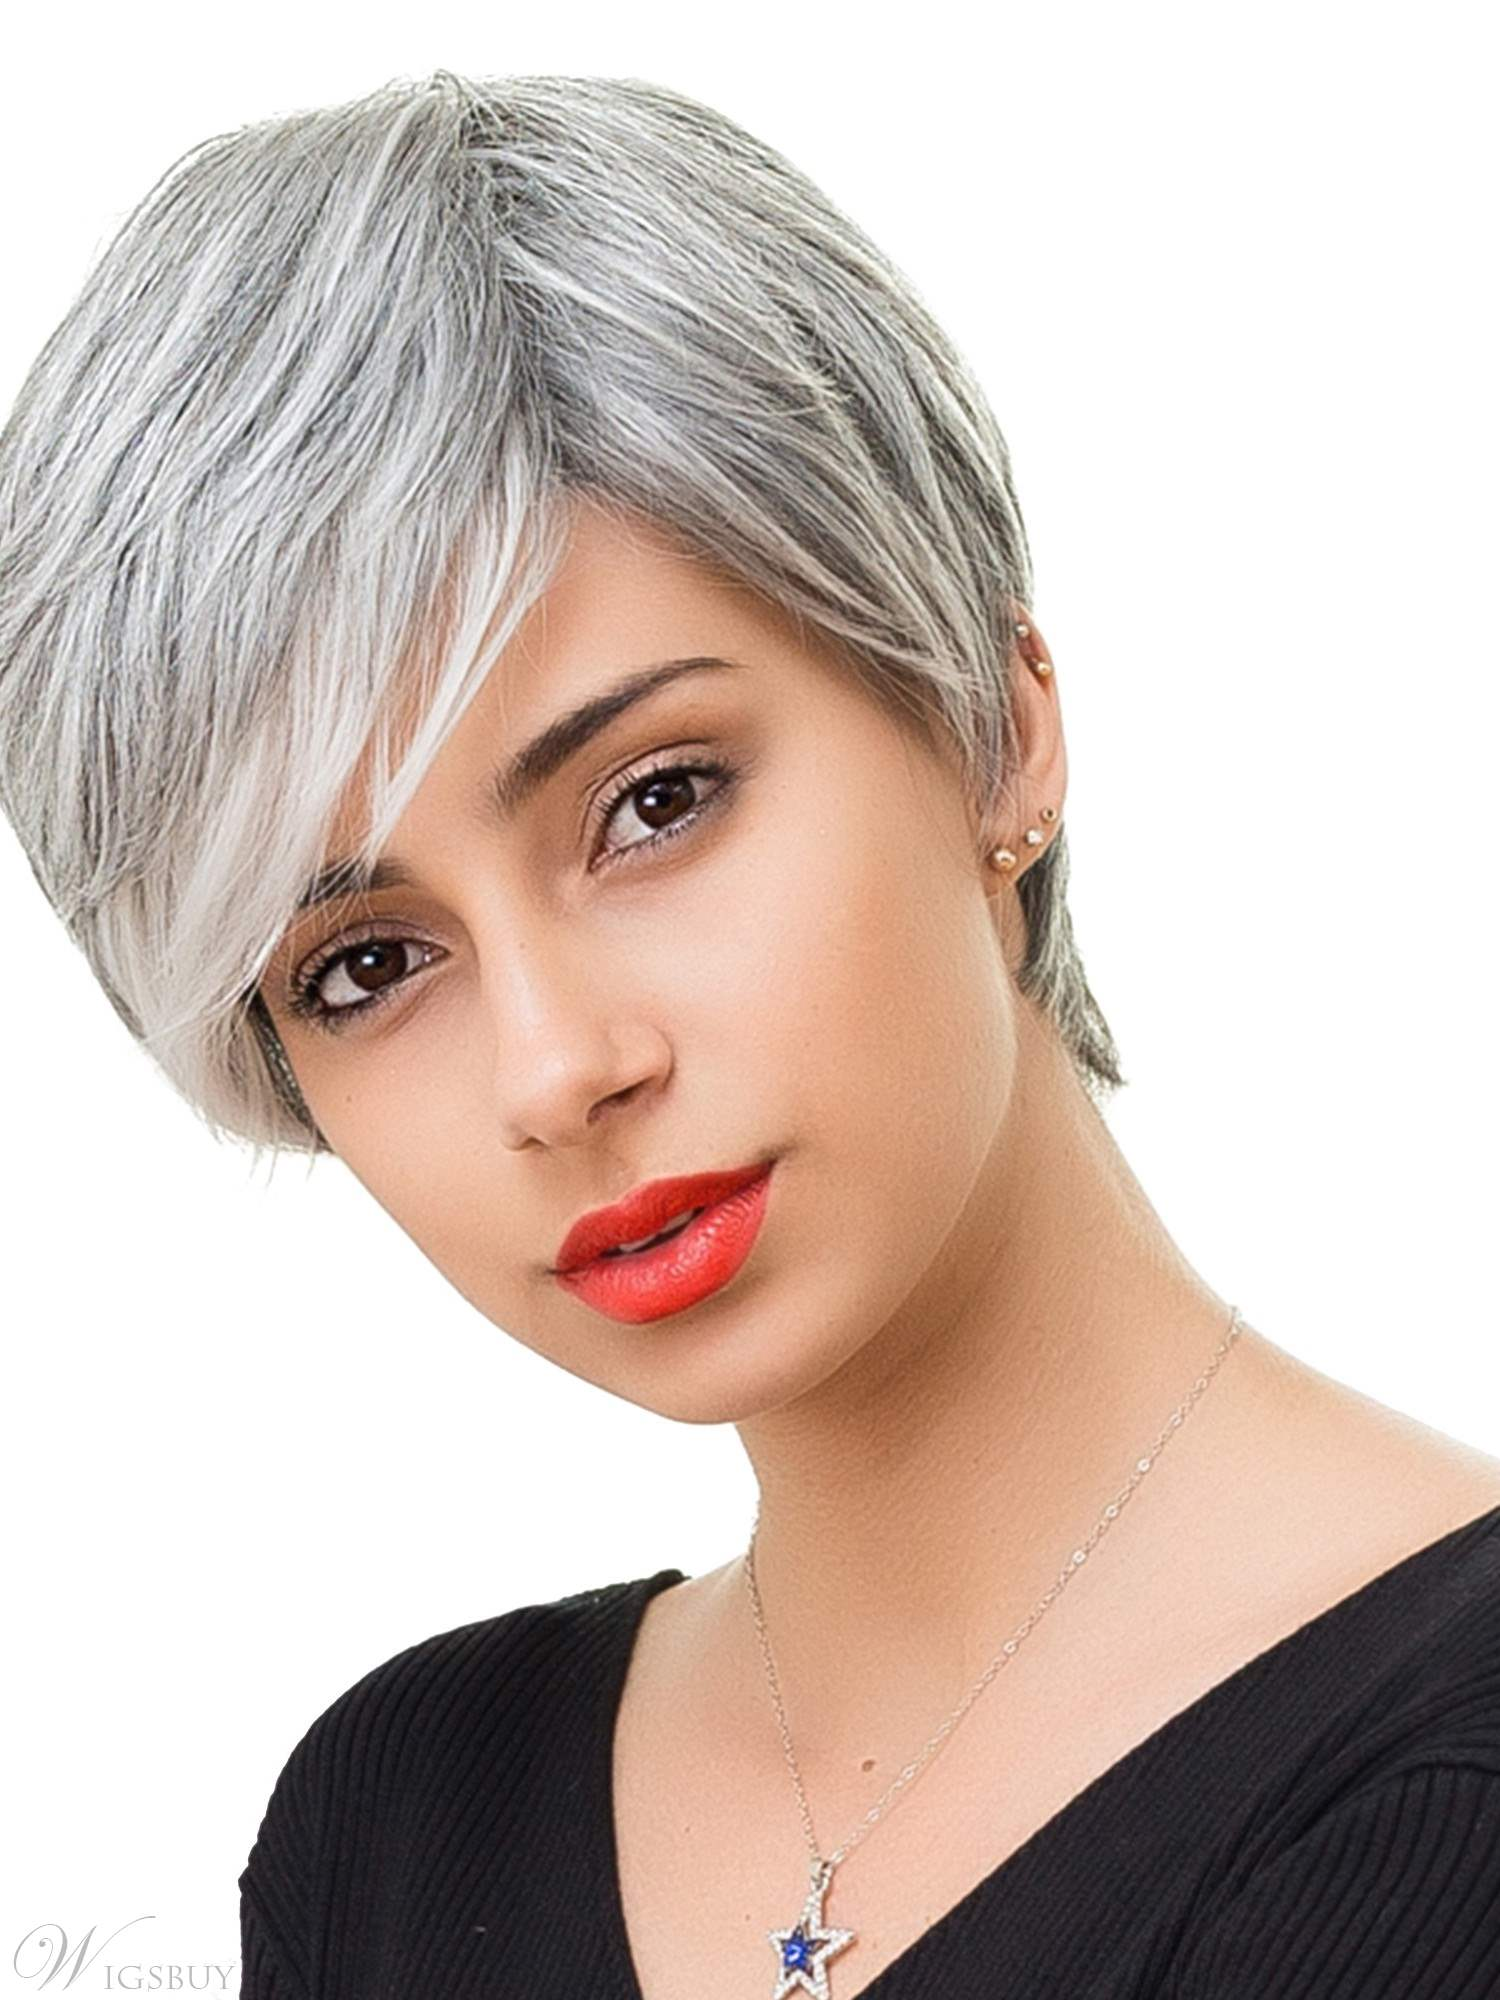 salt and pepper hair styles for woman salt and pepper short straight capless wigs with bangs